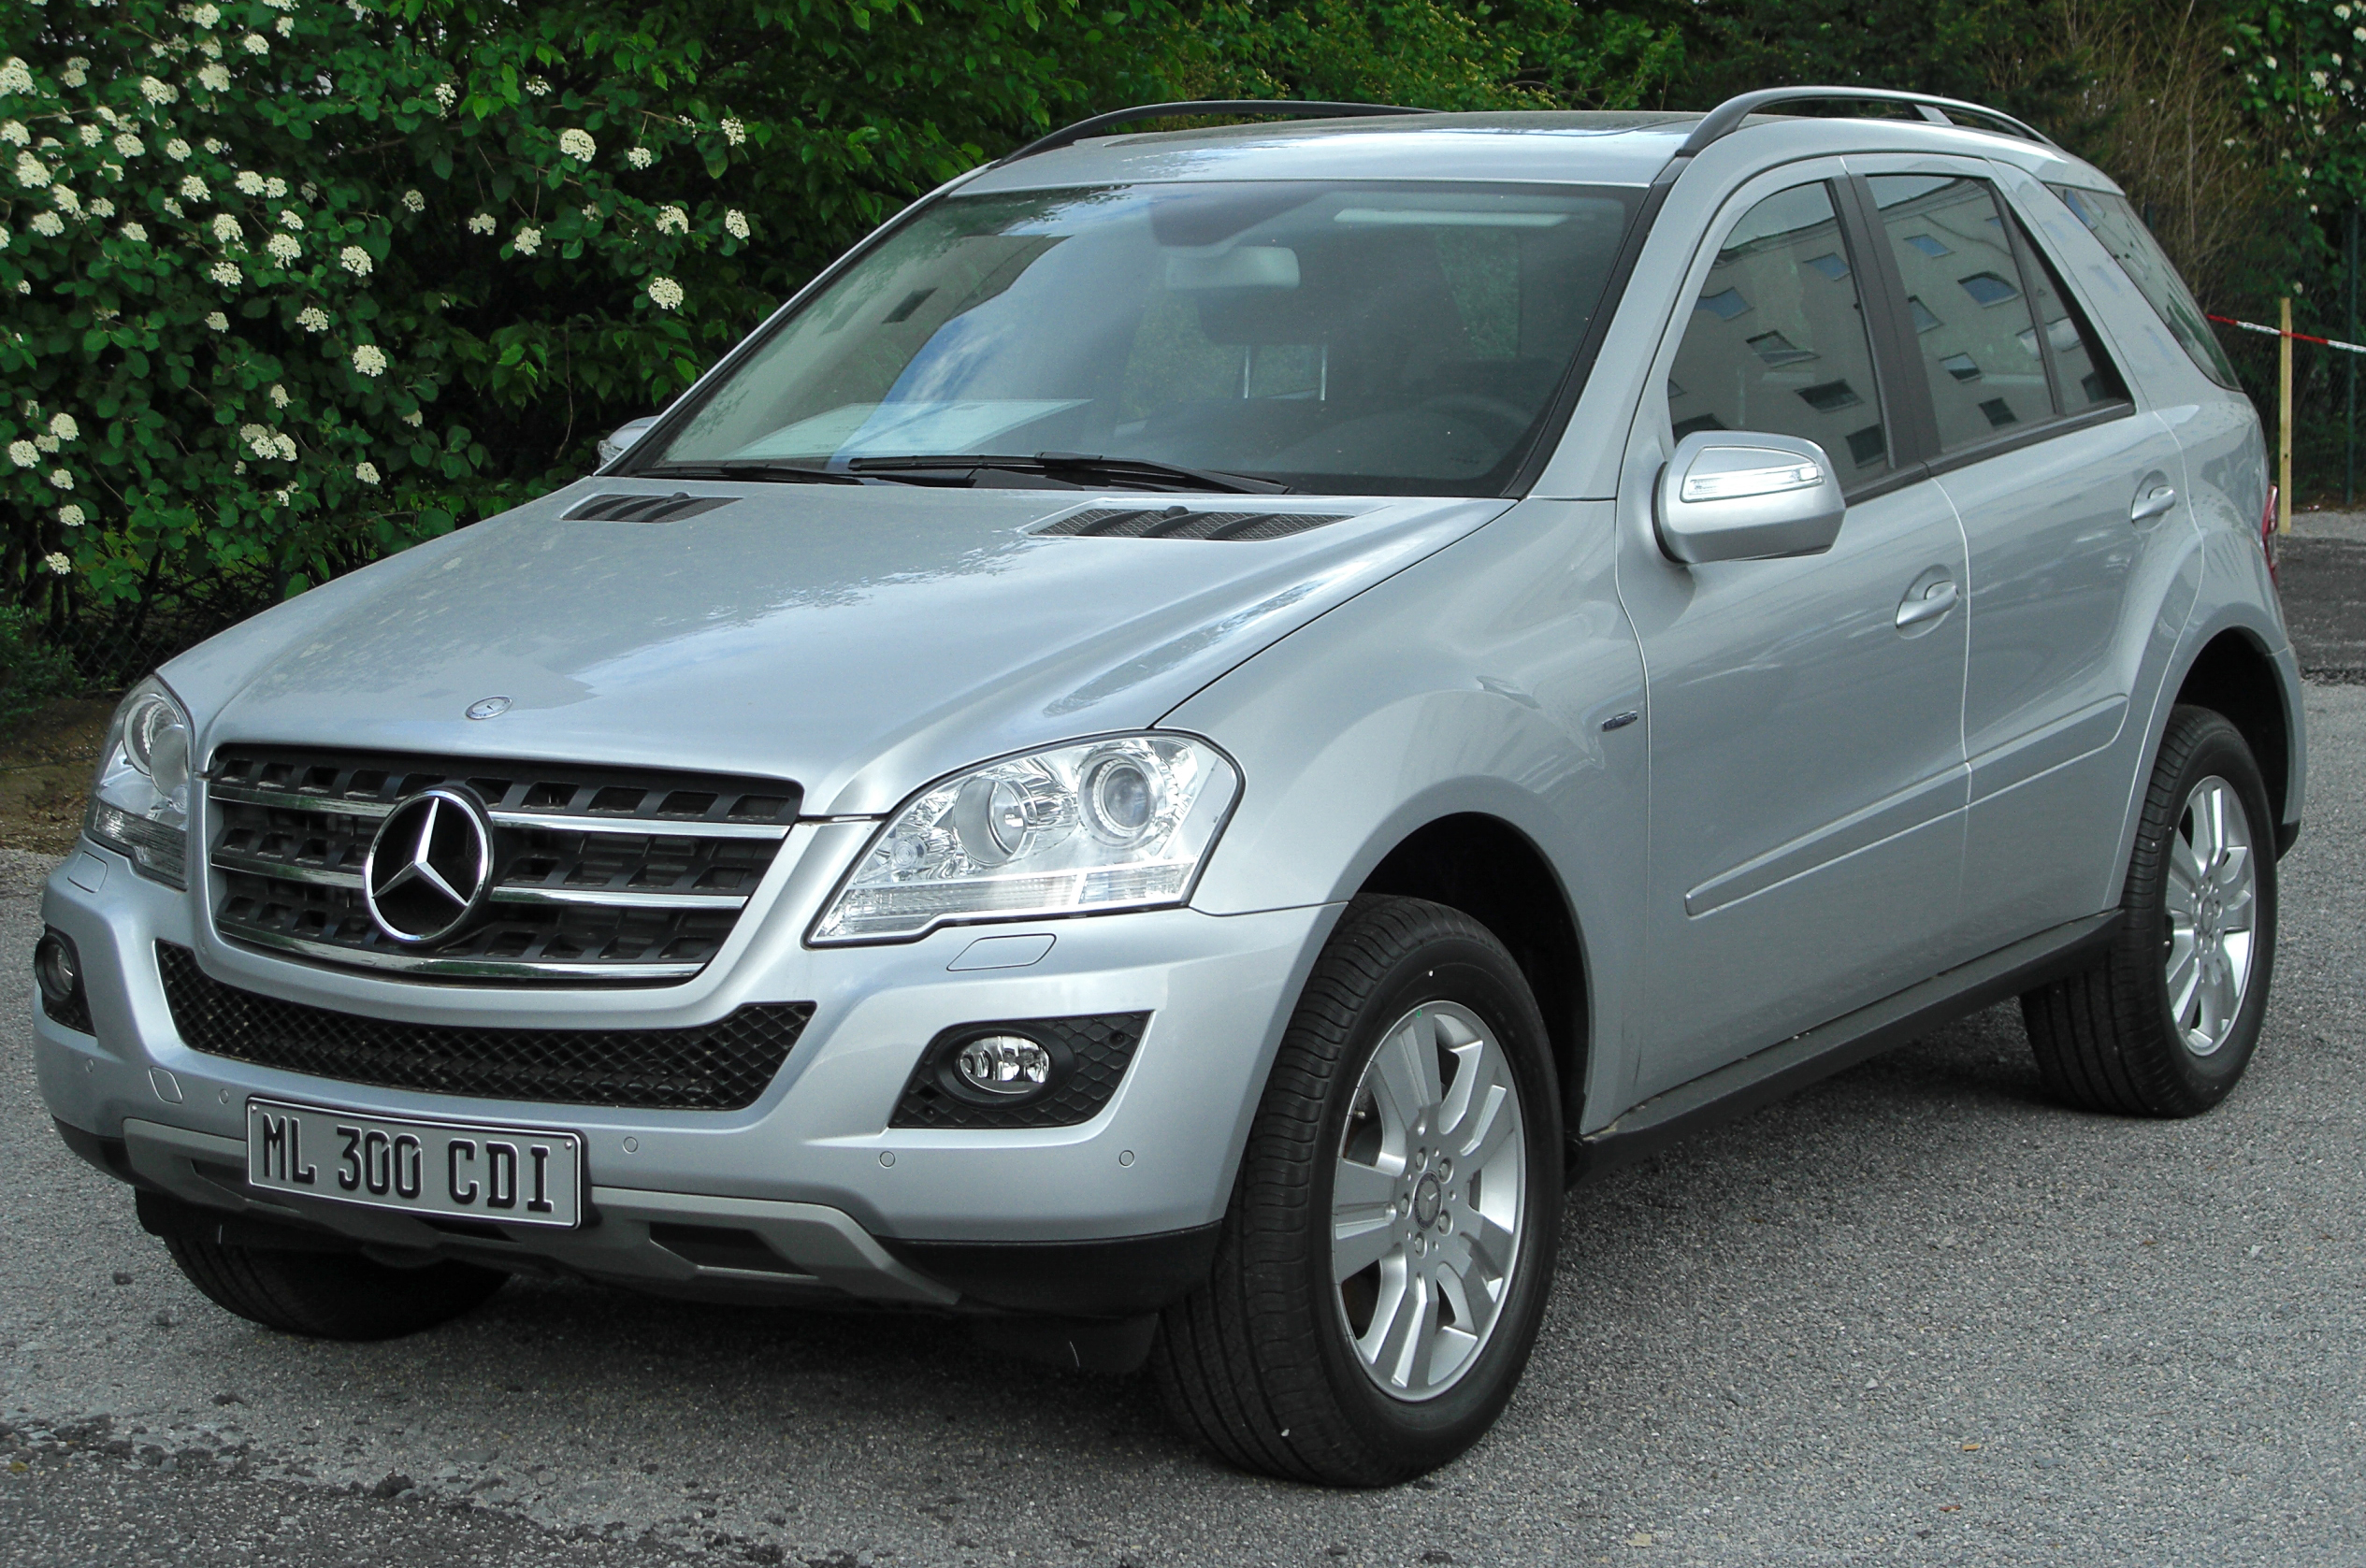 file mercedes ml 300 cdi 4matic blueefficiency w164 facelift front wikimedia. Black Bedroom Furniture Sets. Home Design Ideas